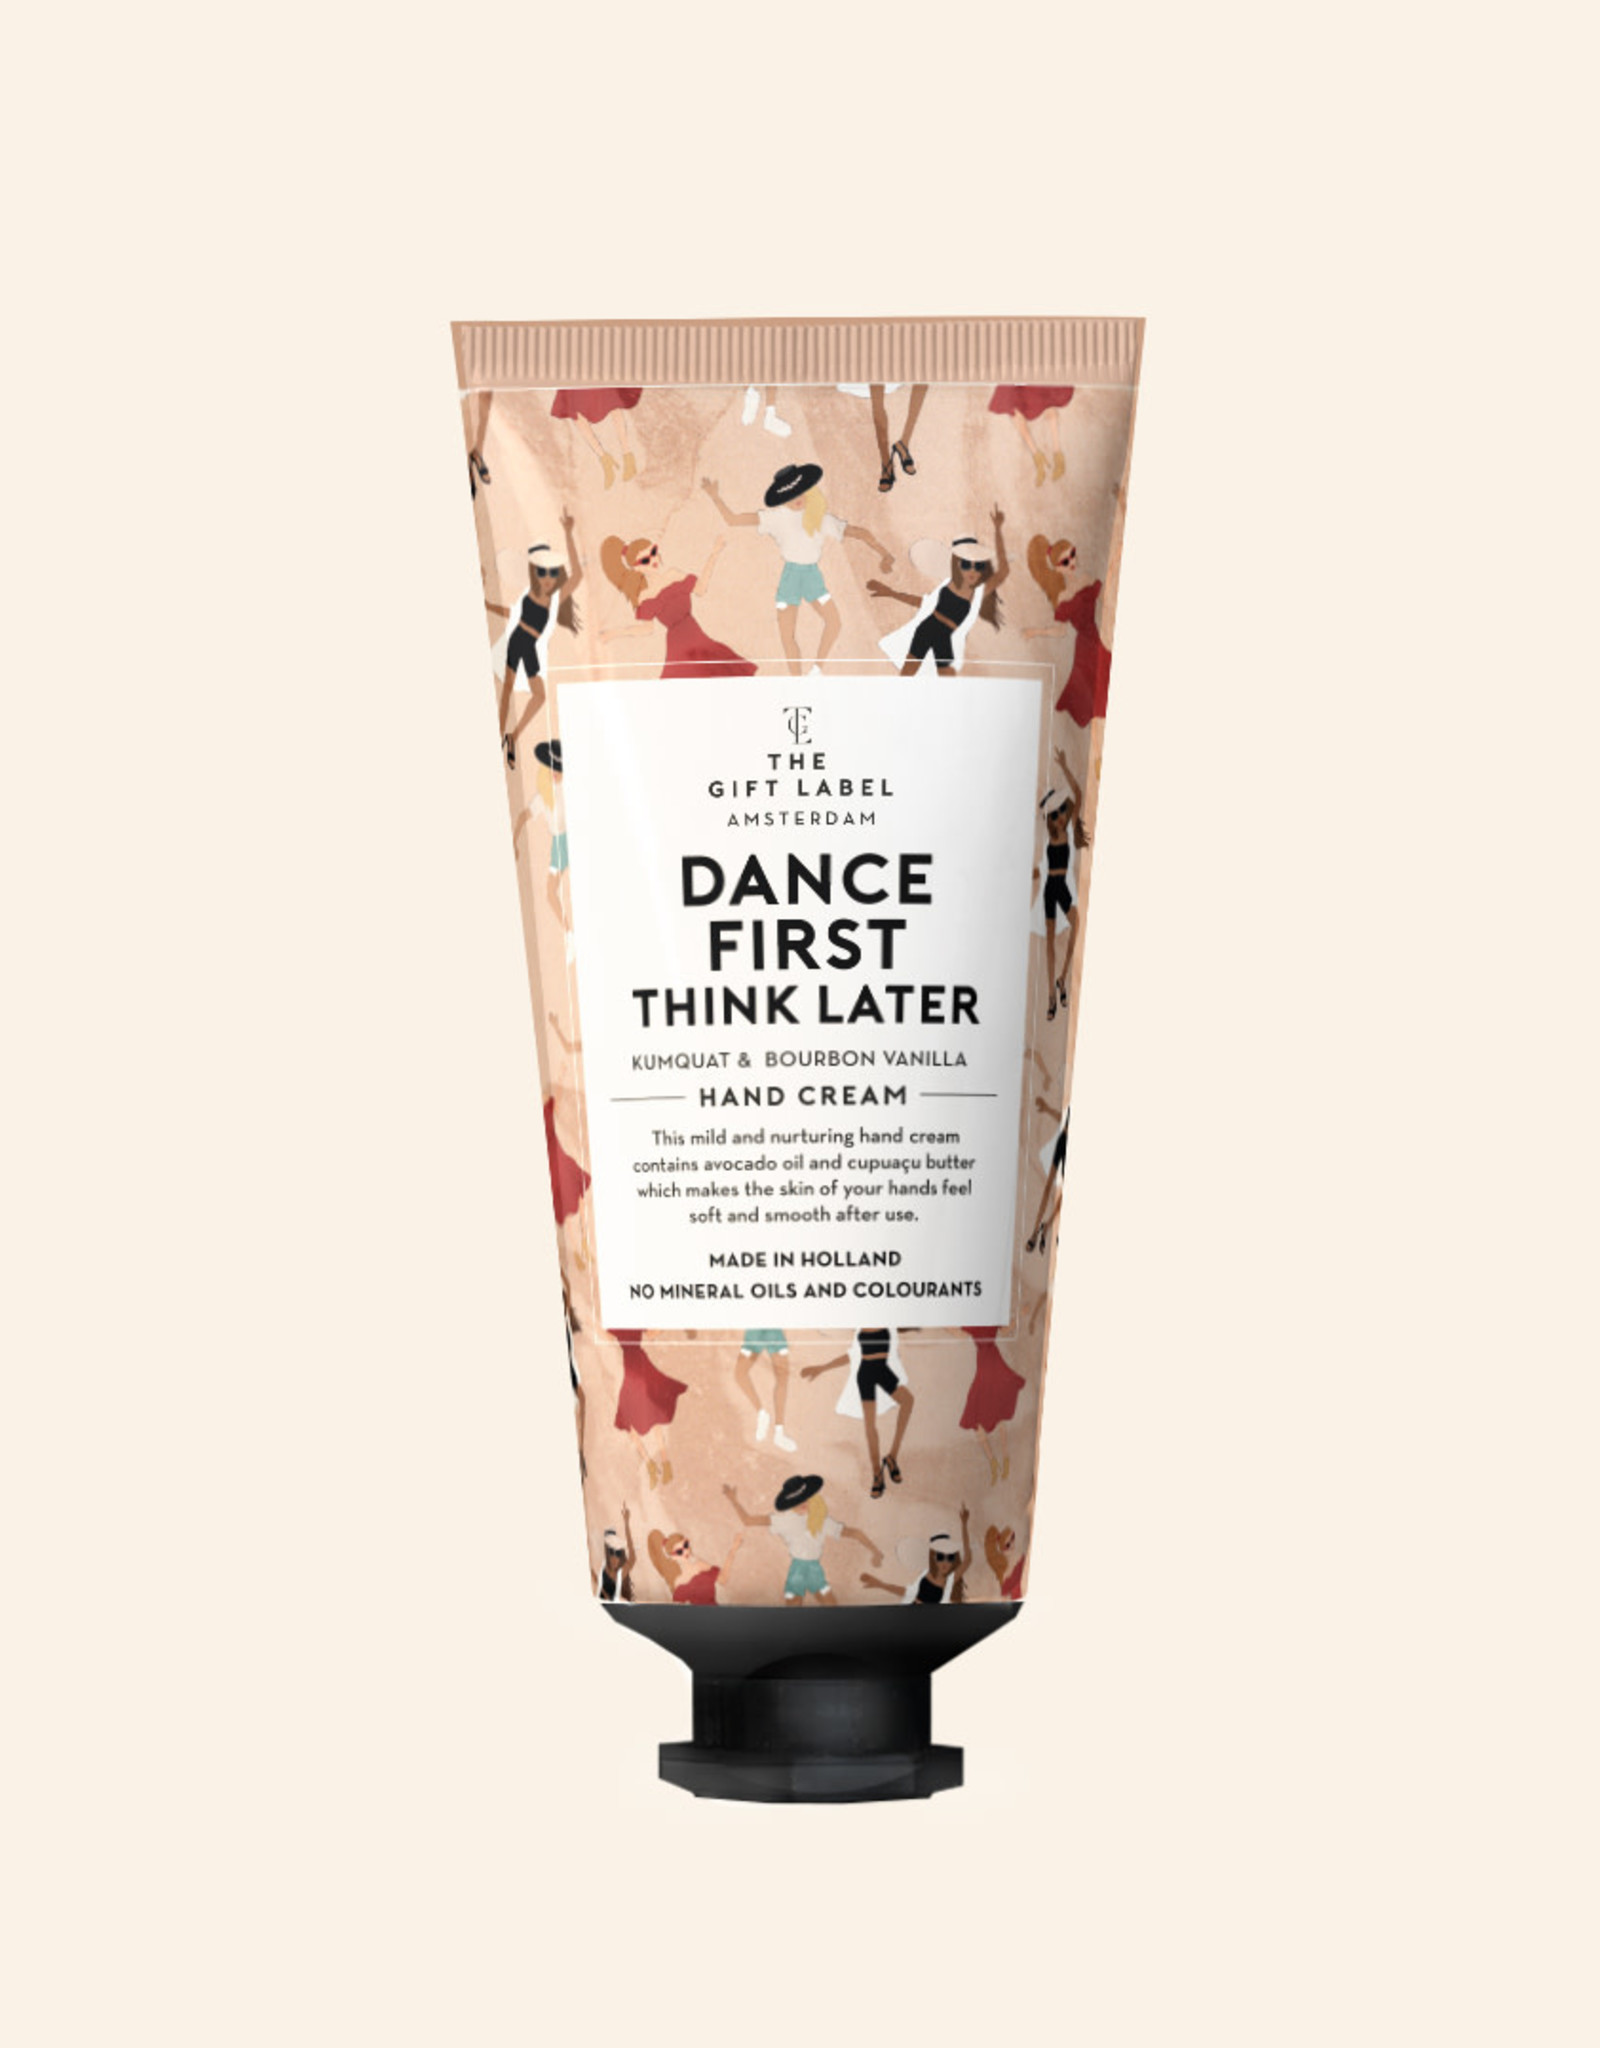 the gift label the gift label Hand cream tube Dance first think later